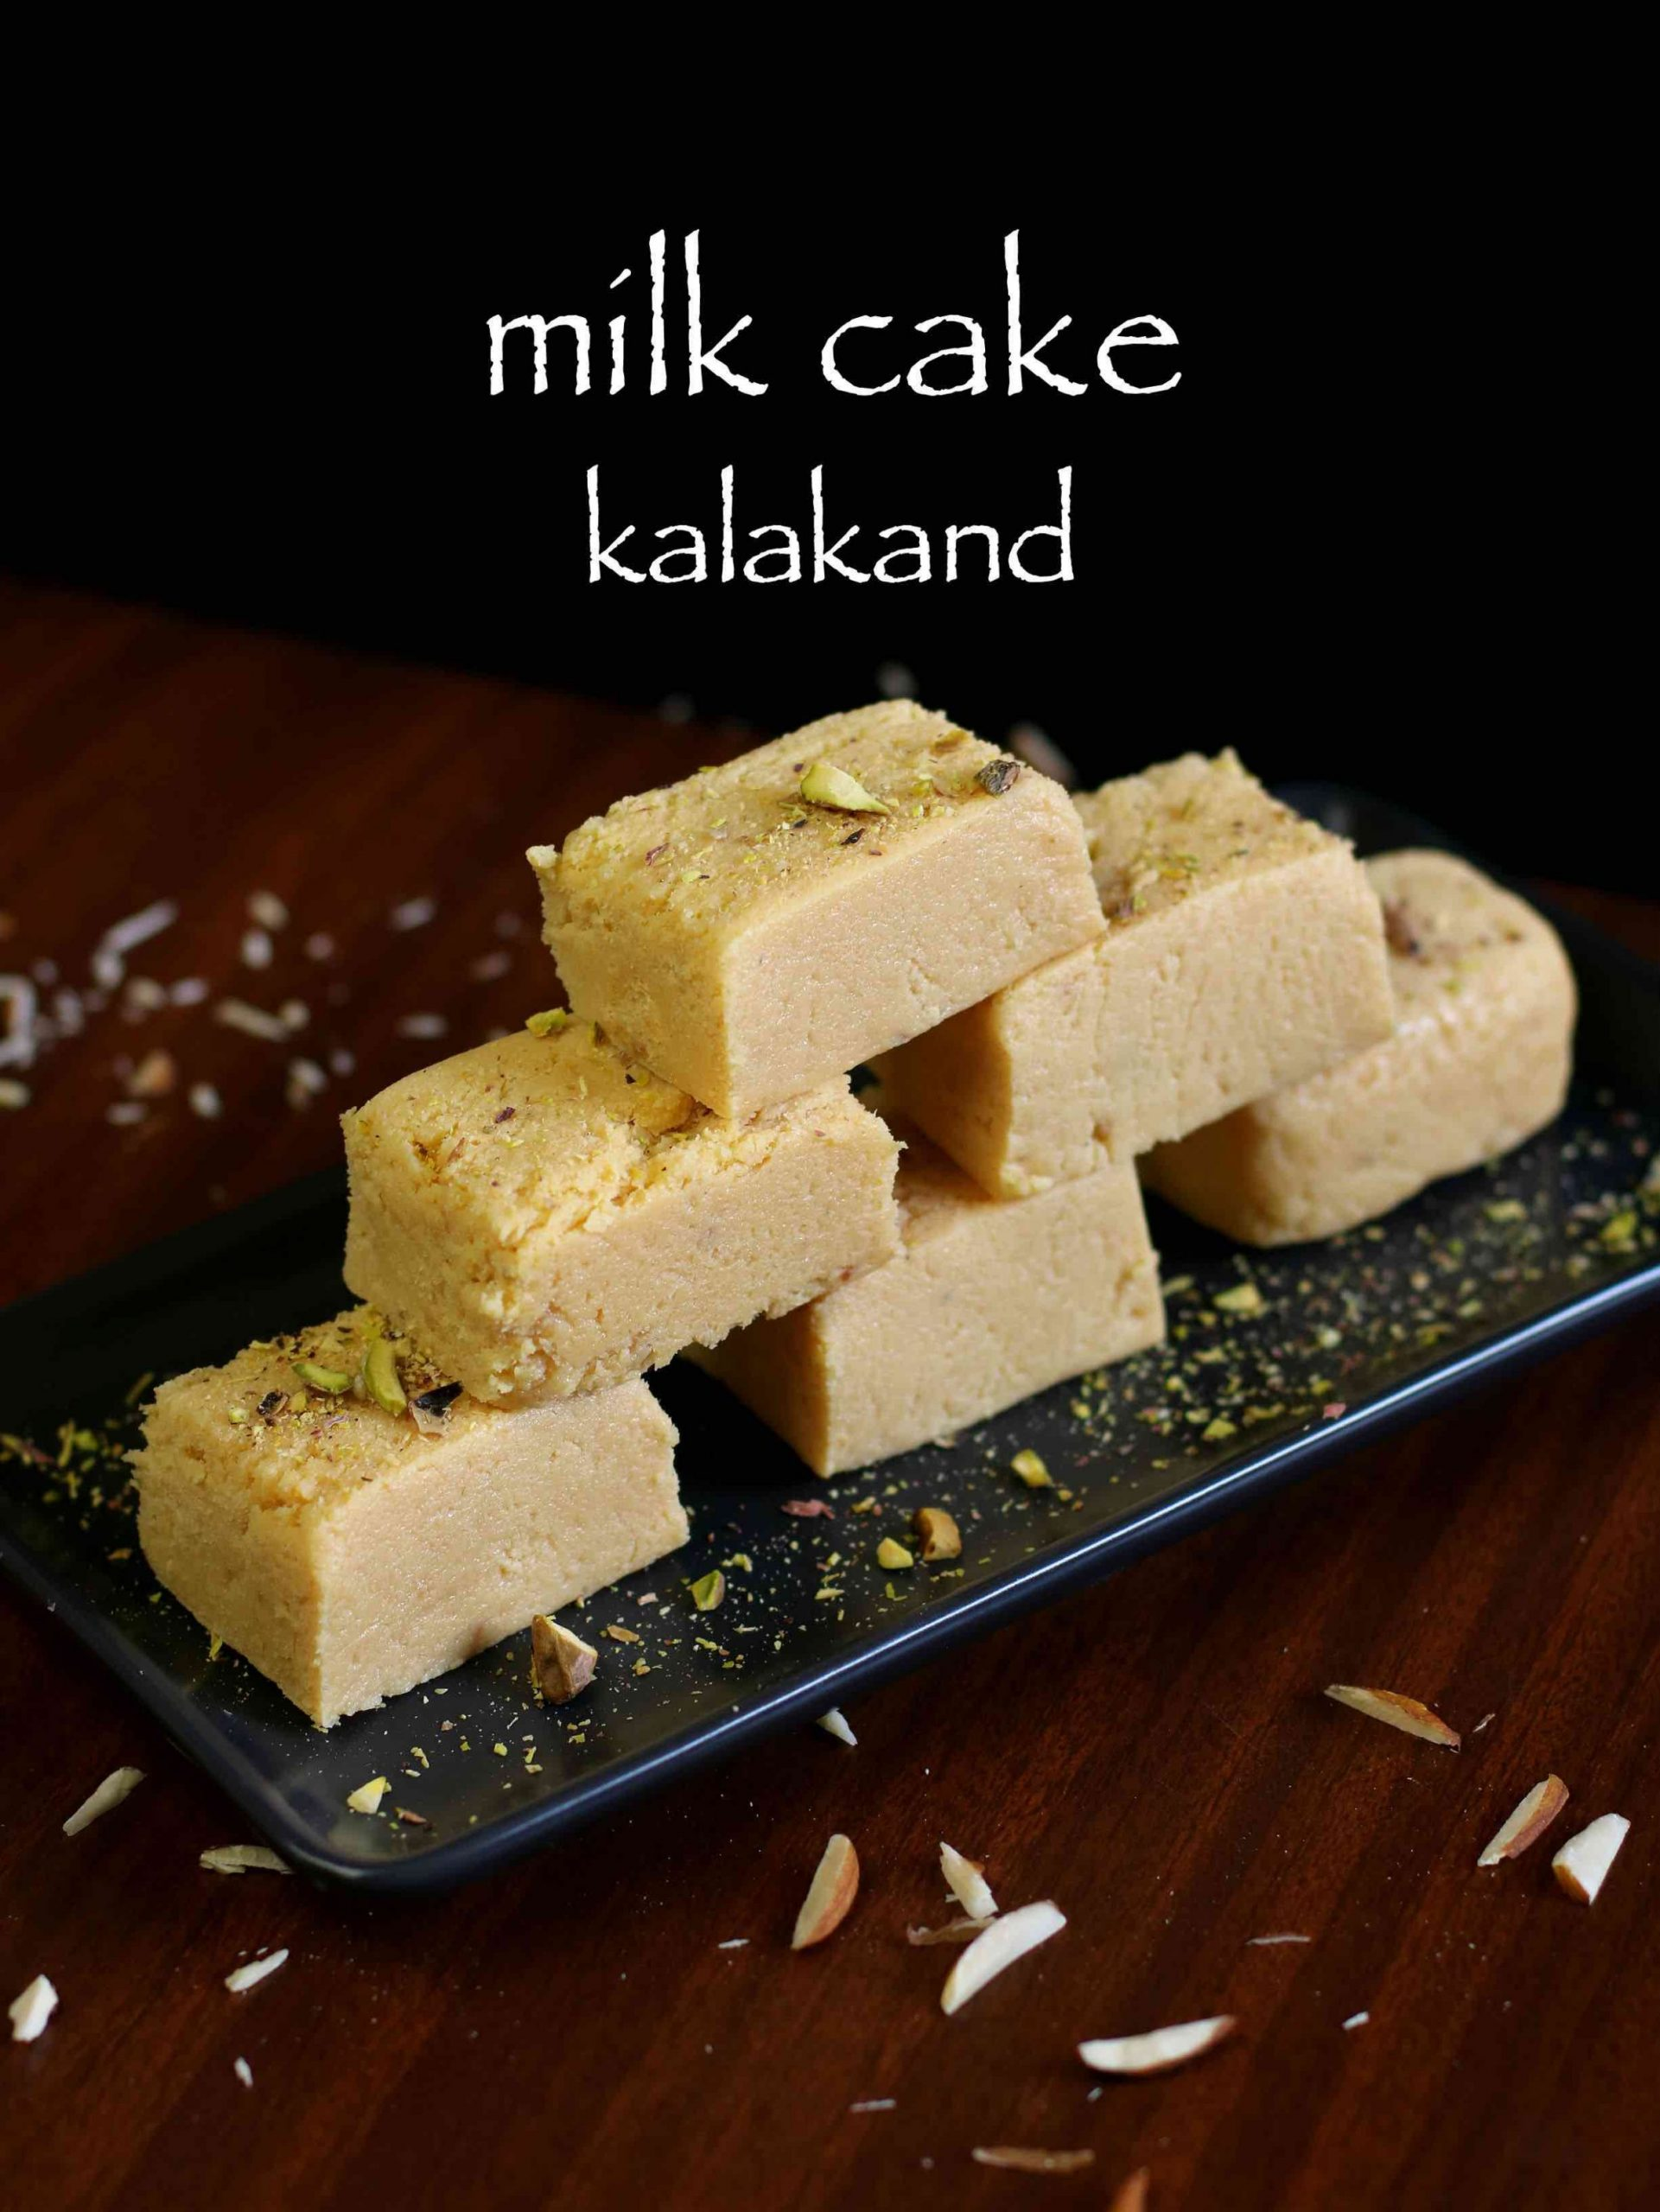 milk cake recipe | milk cake kalakand sweet recipe | milk cake mithai